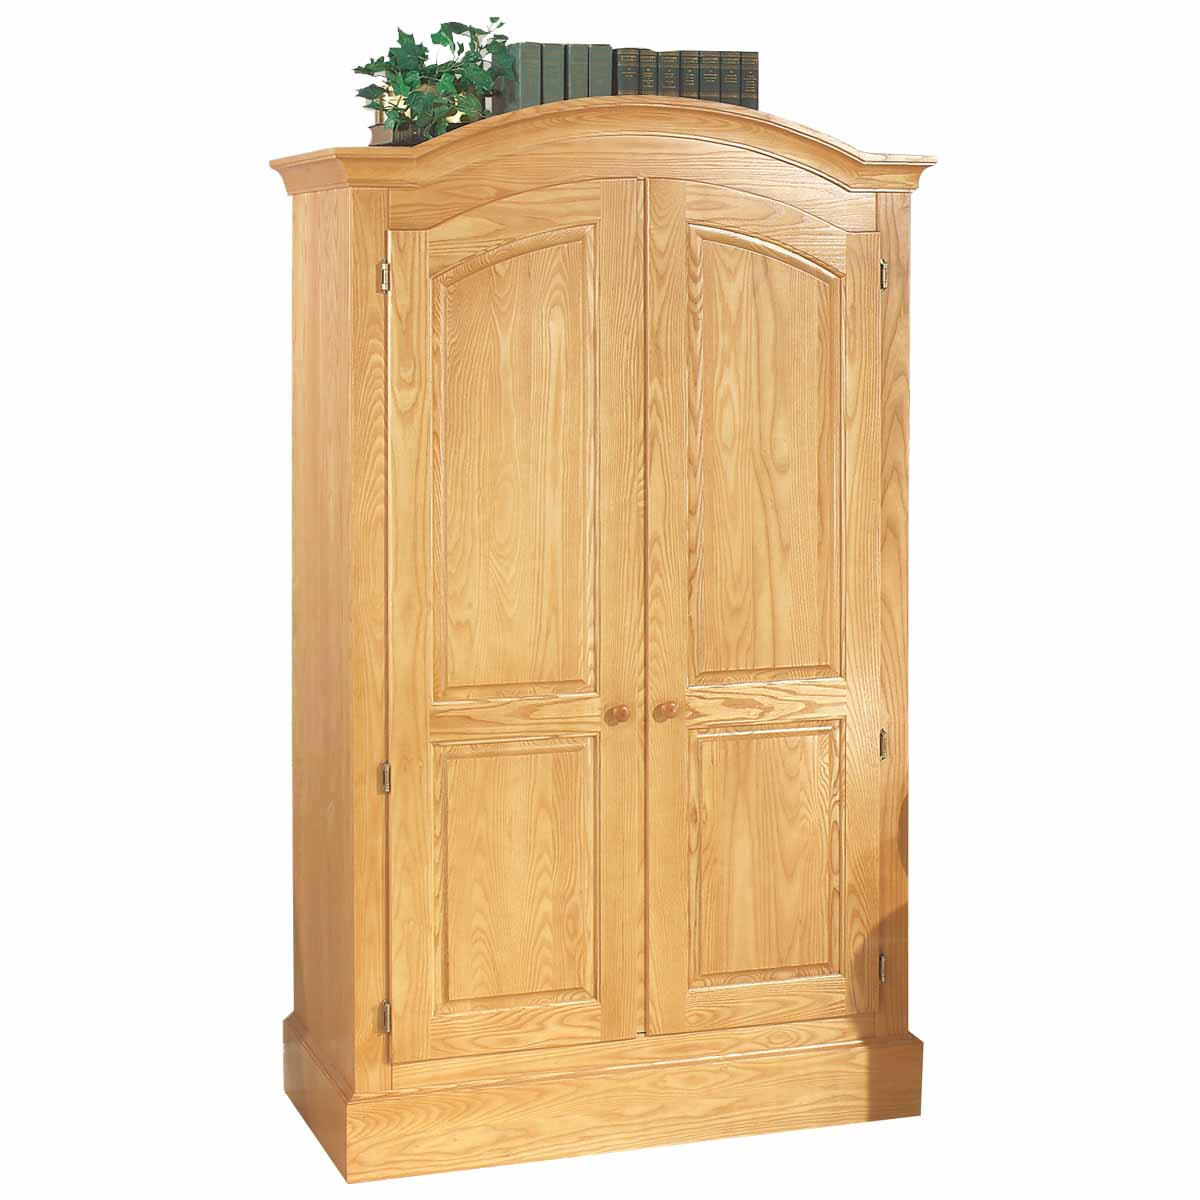 Armoires Mission Style Light Natural Ash Armoire 72 H x 43 W